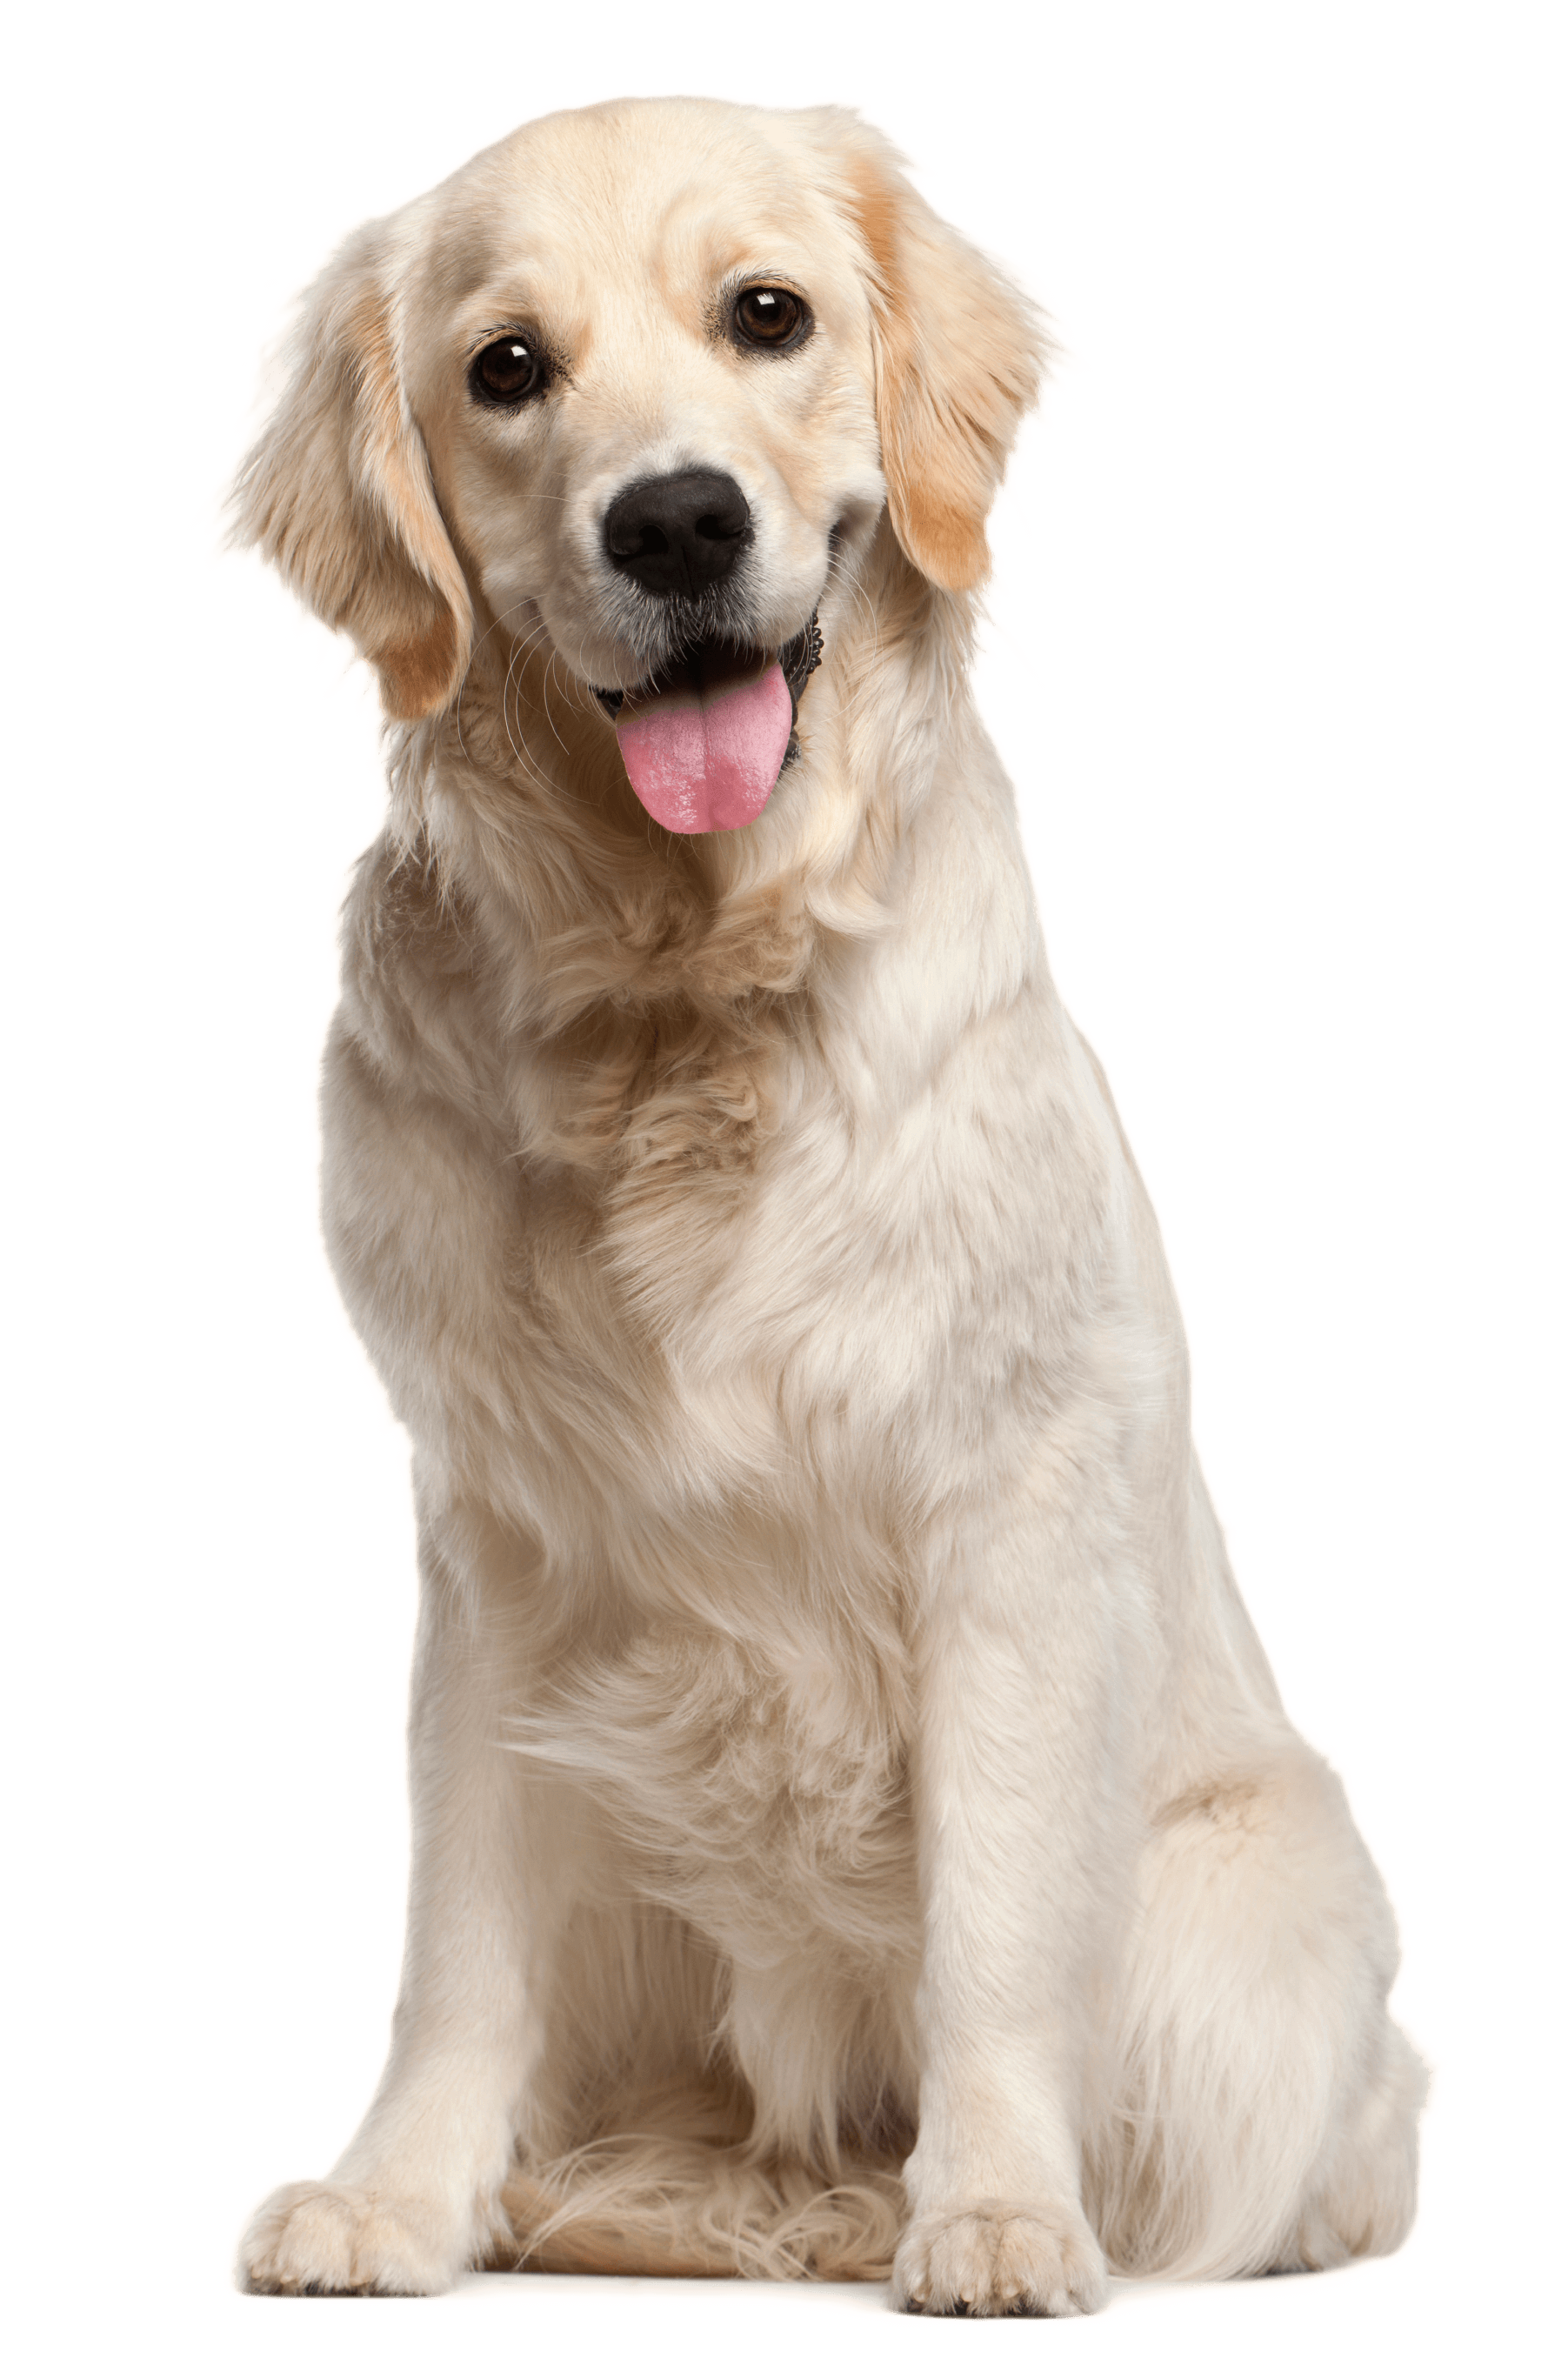 Clipart puppy golden retriever. Strategies on how to